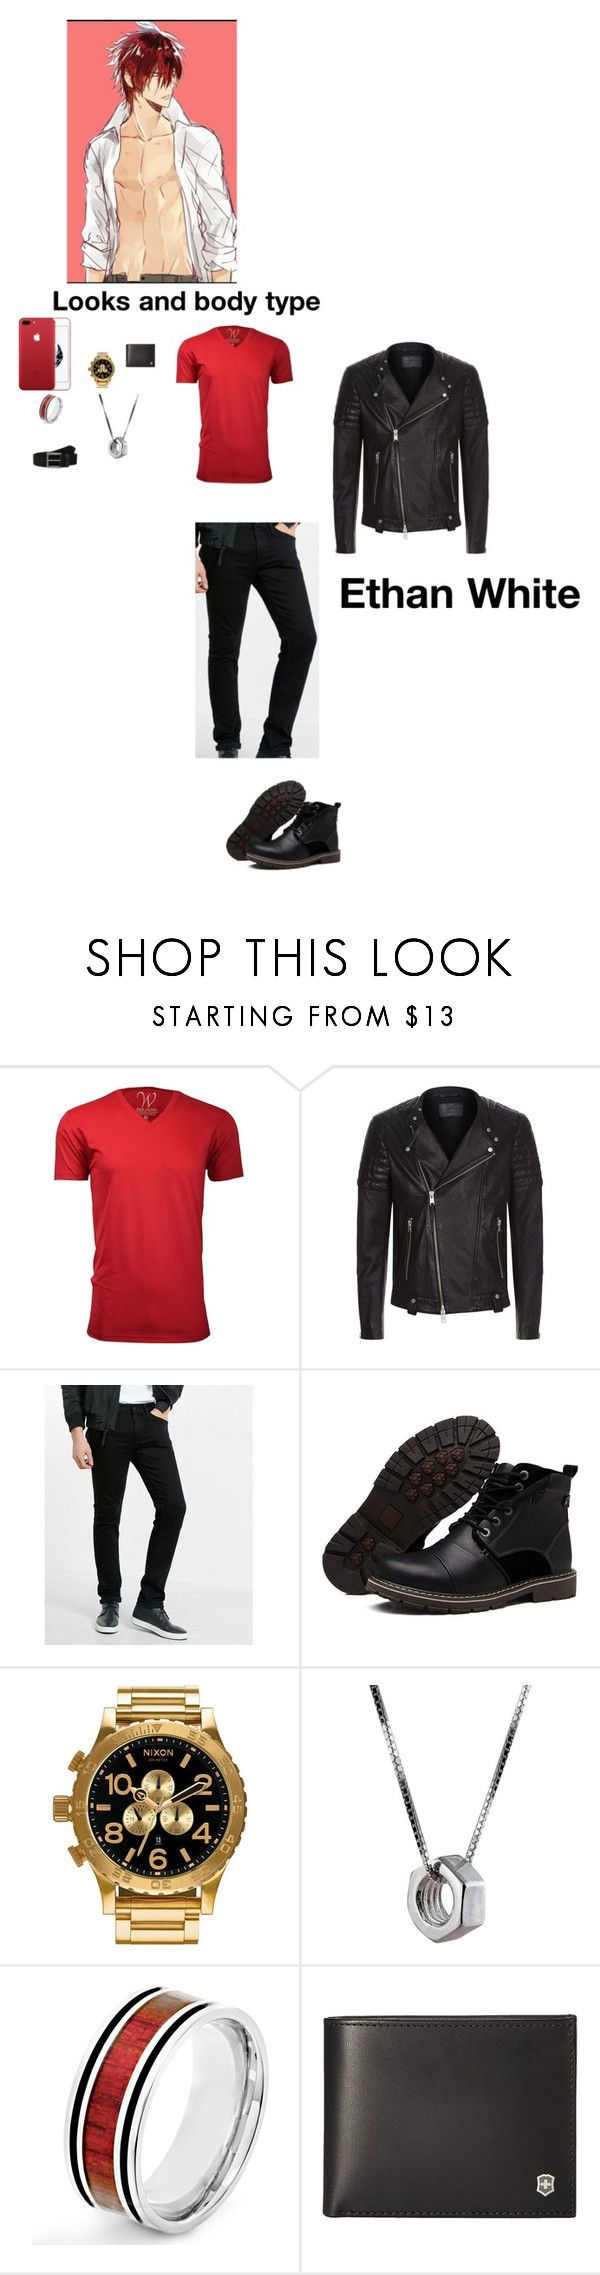 """""""Ethan White"""" by dragonheartse ❤ liked on Polyvore featuring Ethan Williams, AllSaints, Express, Nixon, Edge Only, West Coast Jewelry, Victorinox Swiss Army, Timberland, men's fashion and menswear"""